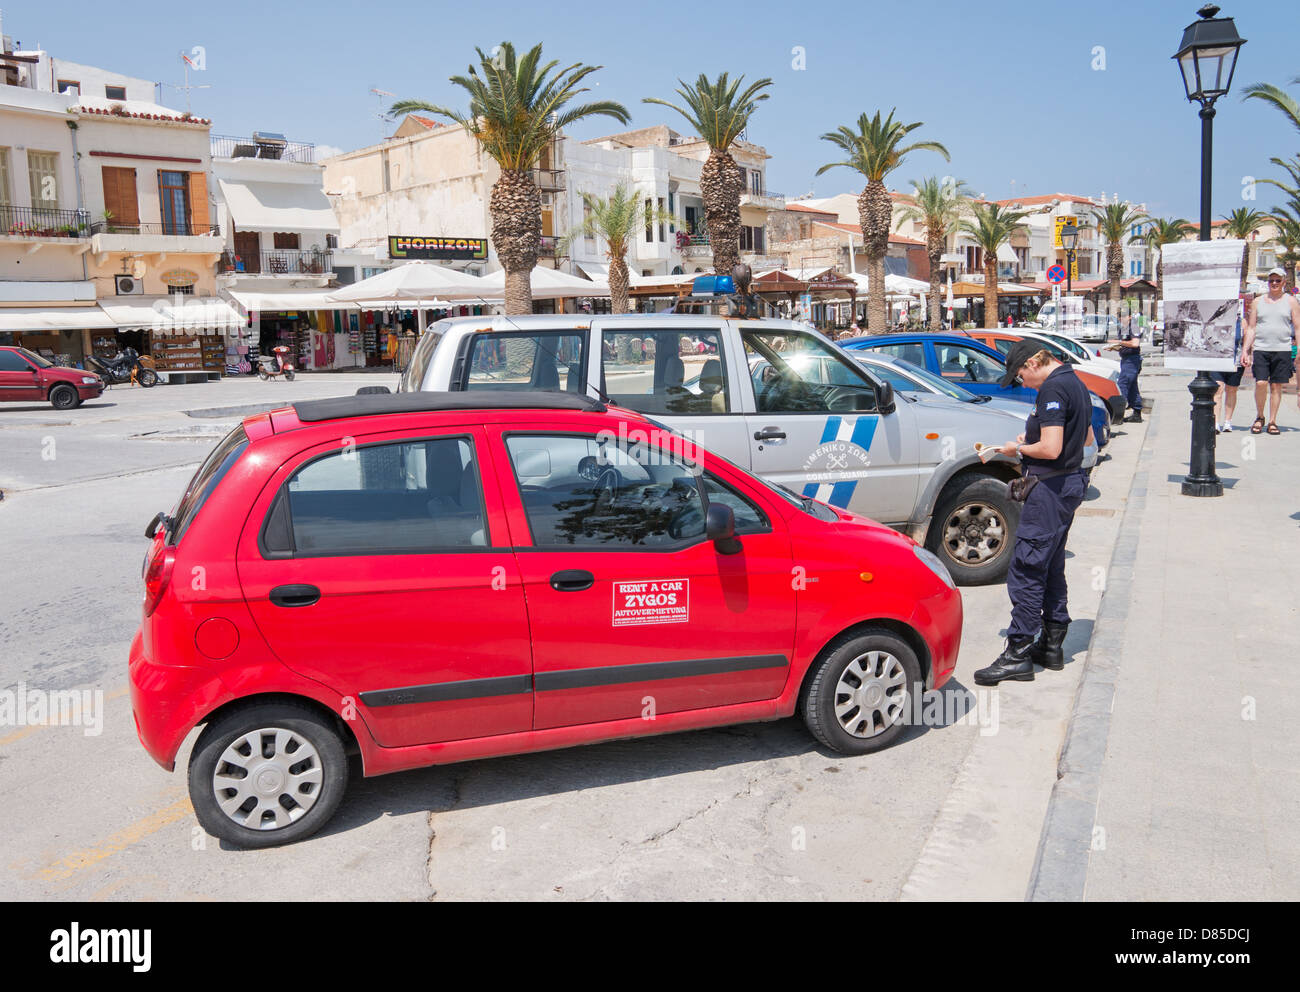 Traffic wardens or  police officers issuing parking tickets in the Cretan town of Rethymno - Stock Image